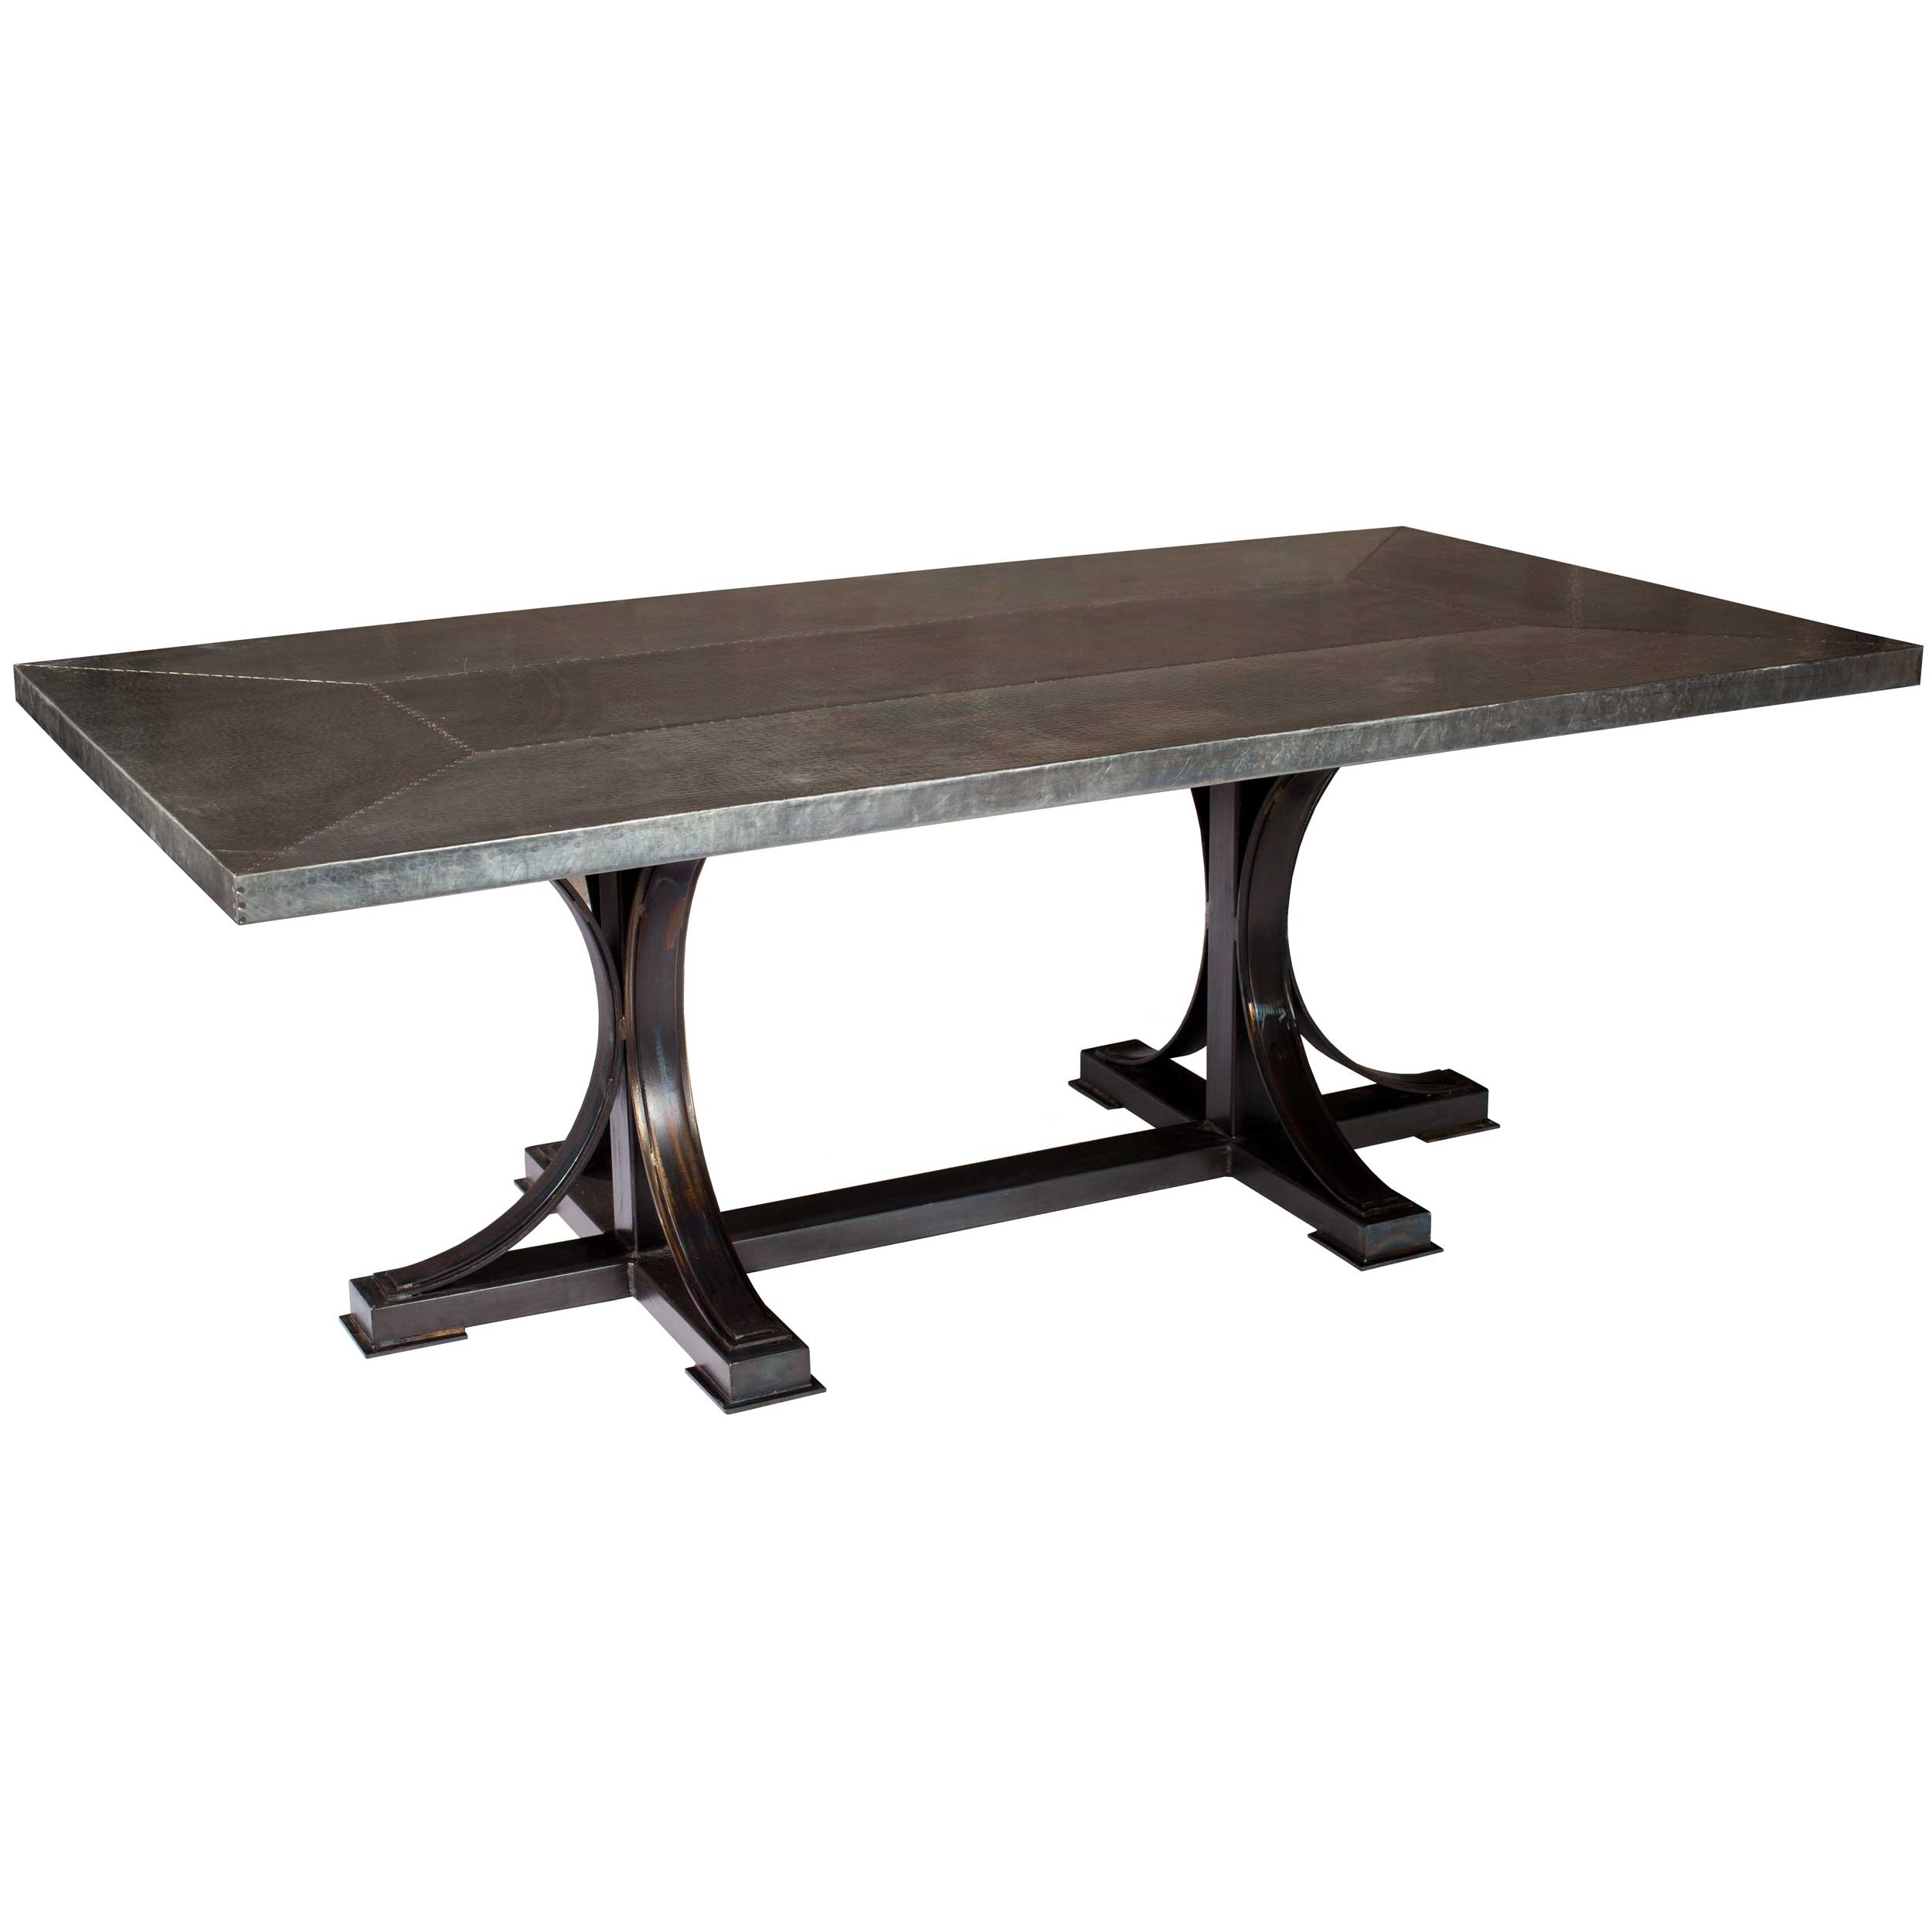 "Winston 72"" x 44"" Dining Table with Rectangle Zinc Top"